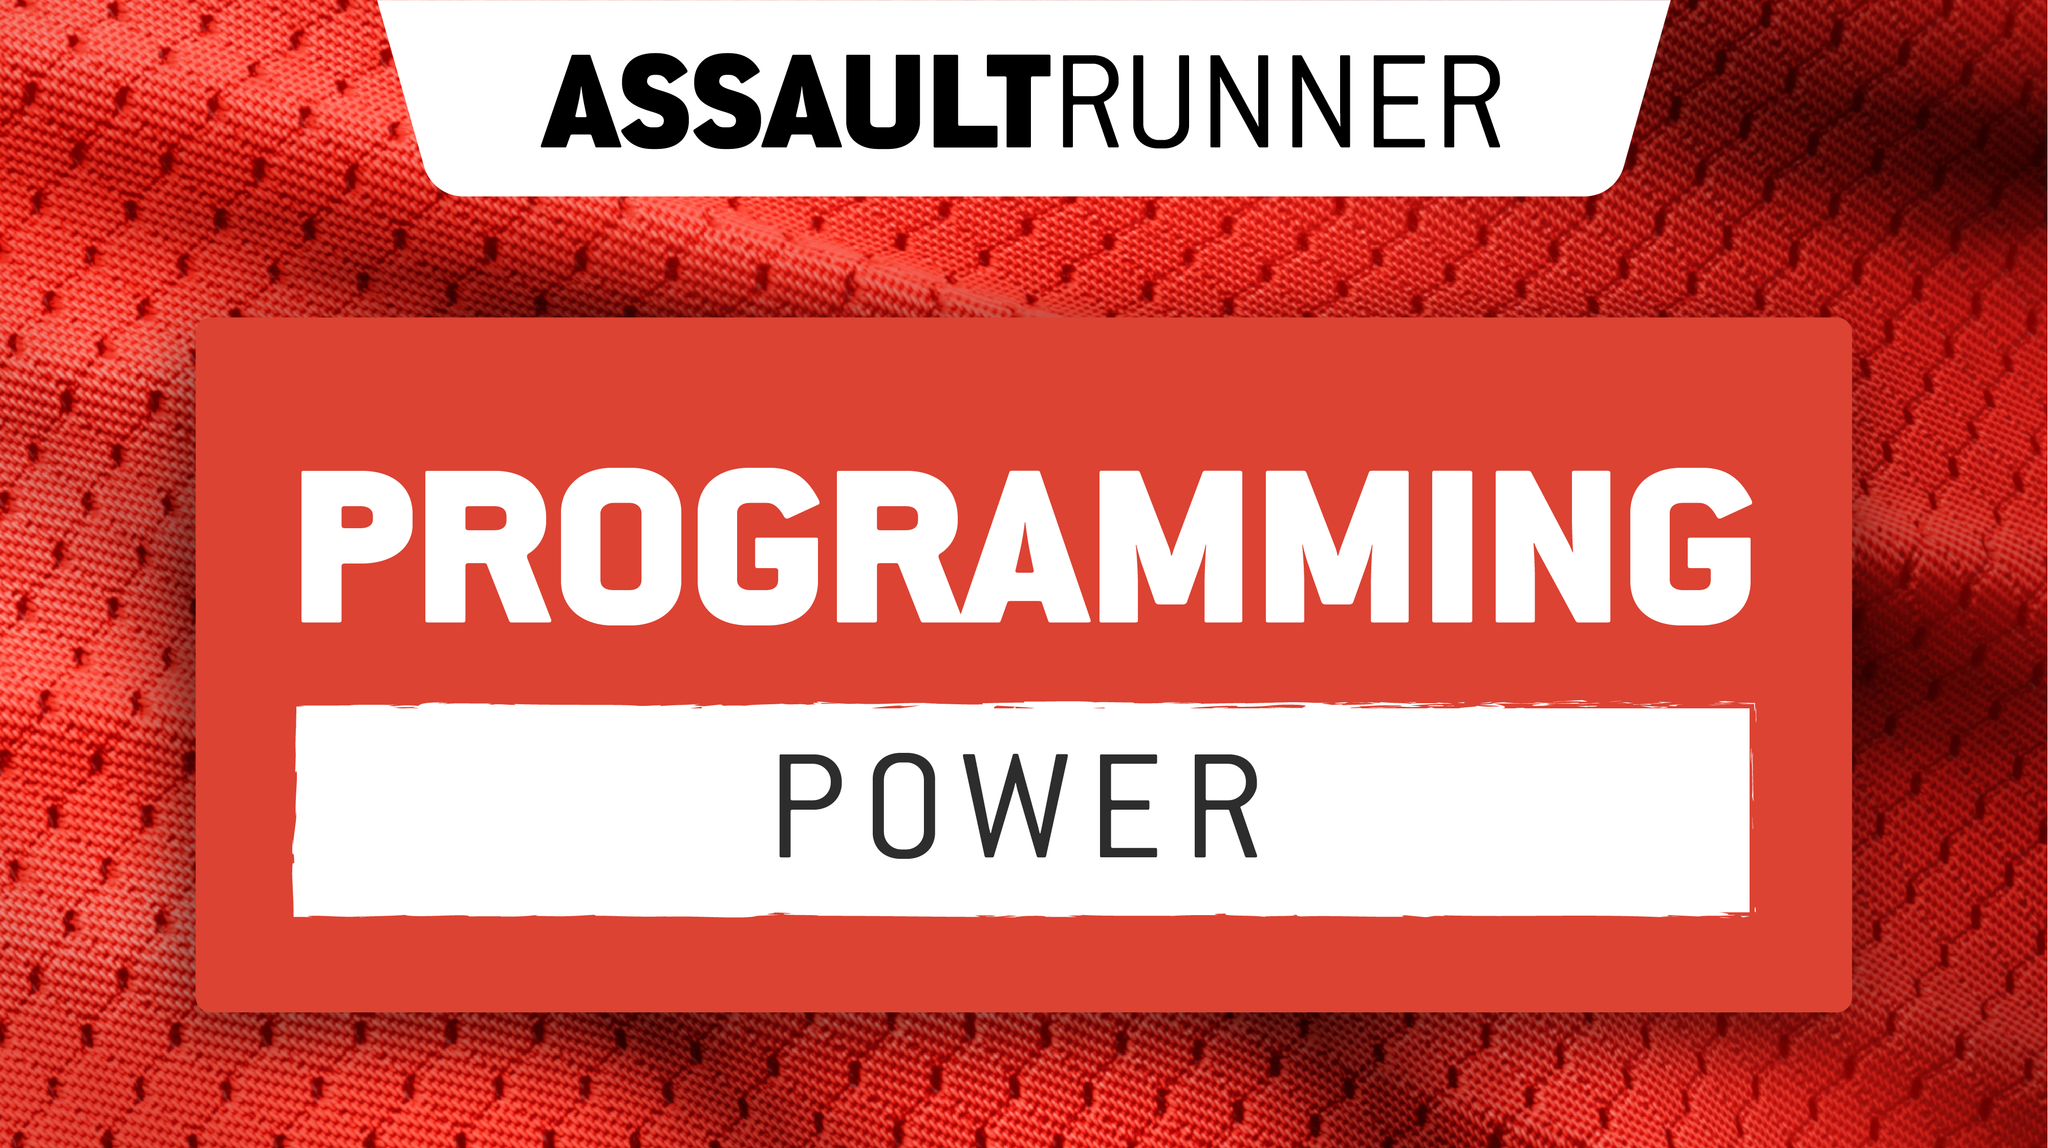 Assault WOD: AssaultRunner Power